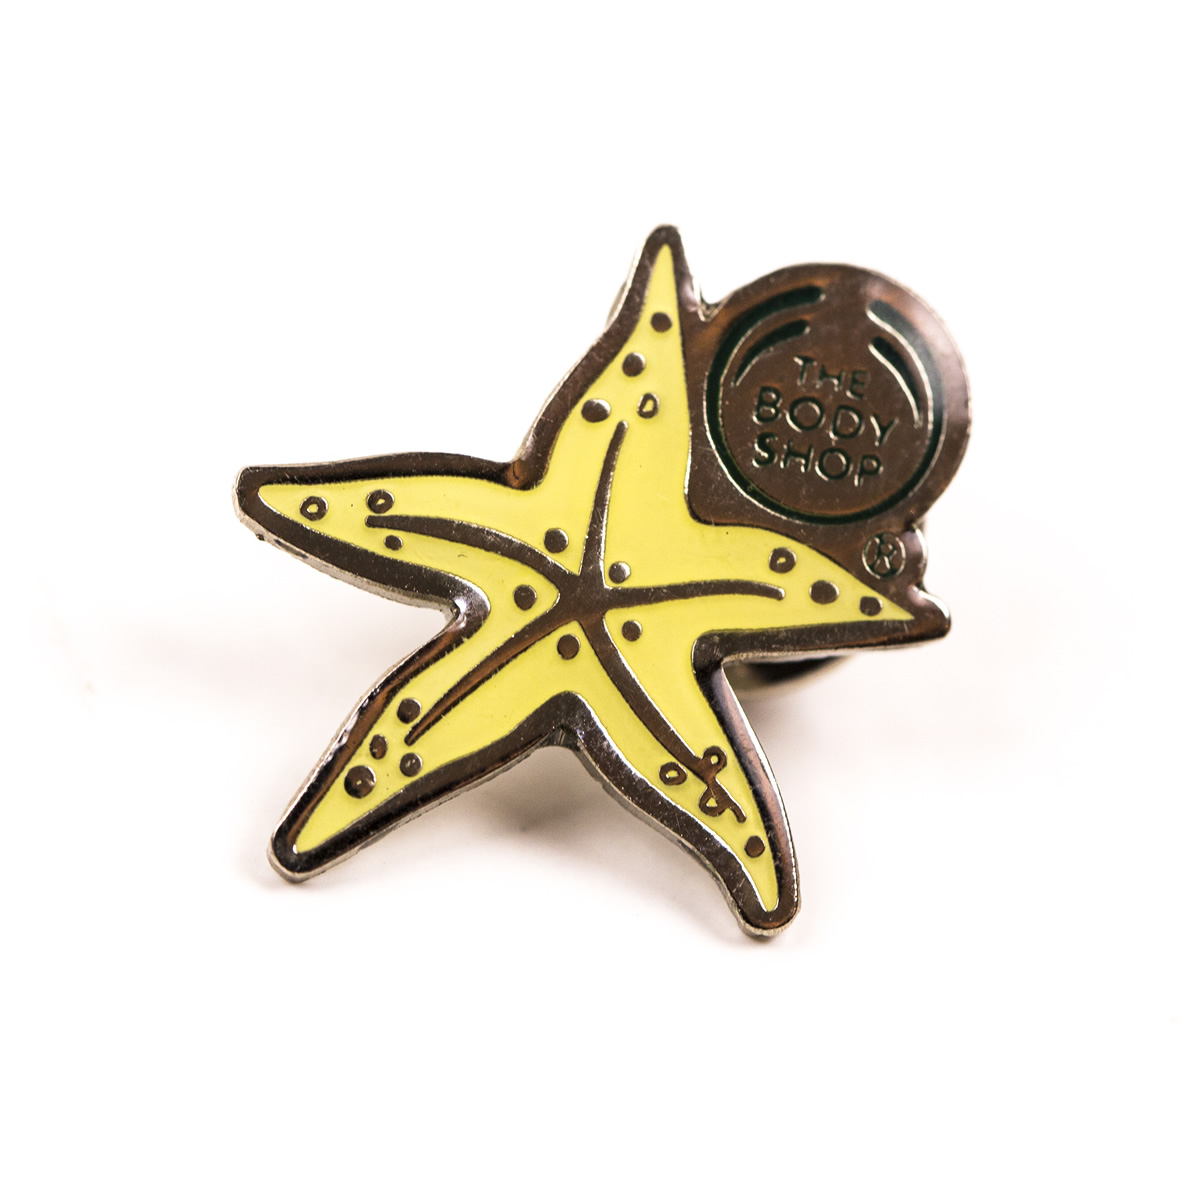 Custom Lapel Pin Badges | Promotional Pin Badges | i4c